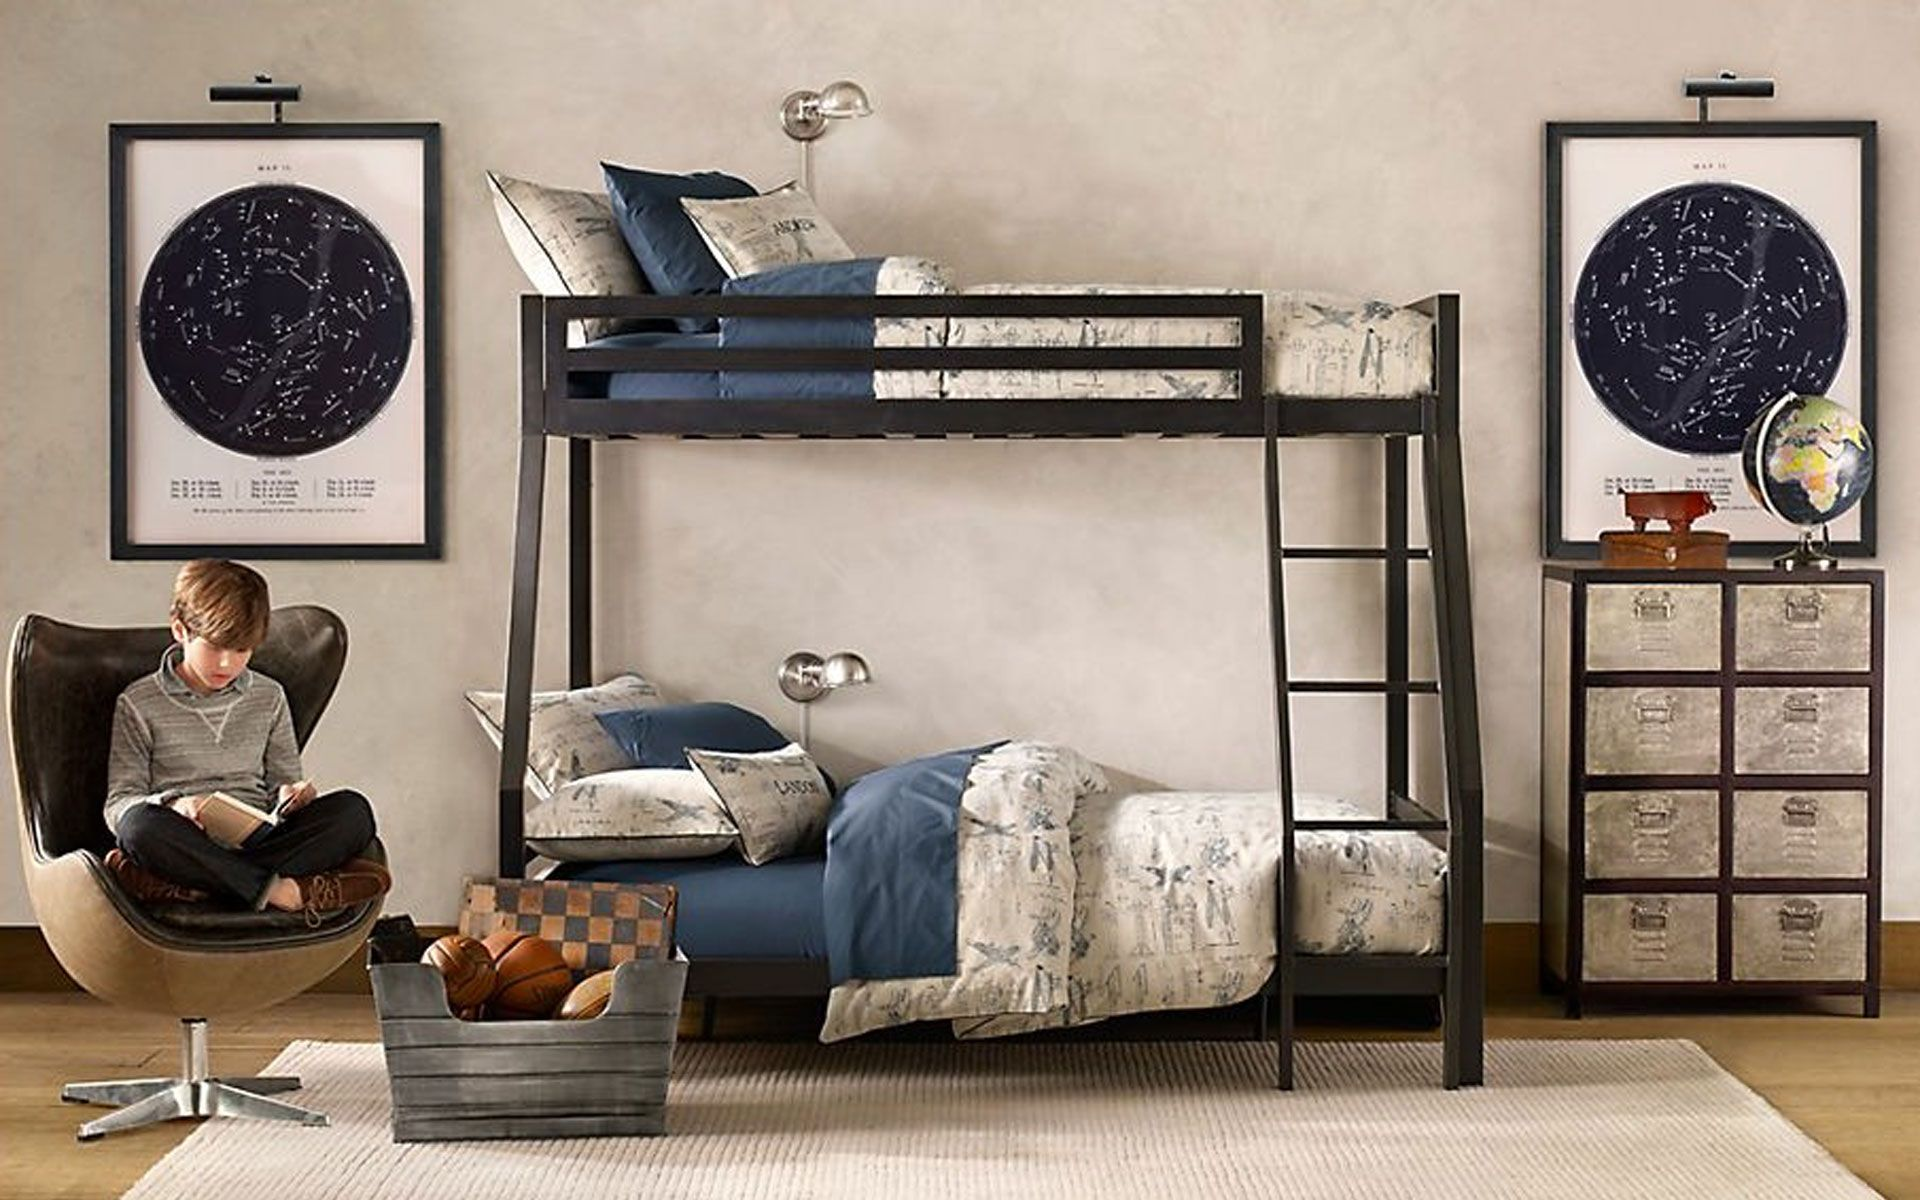 wooden bunk beds galvanized metal furniture for a teen room ideas inspiration design exquisite boys room ideas - Boys Room Ideas With Bunk Beds